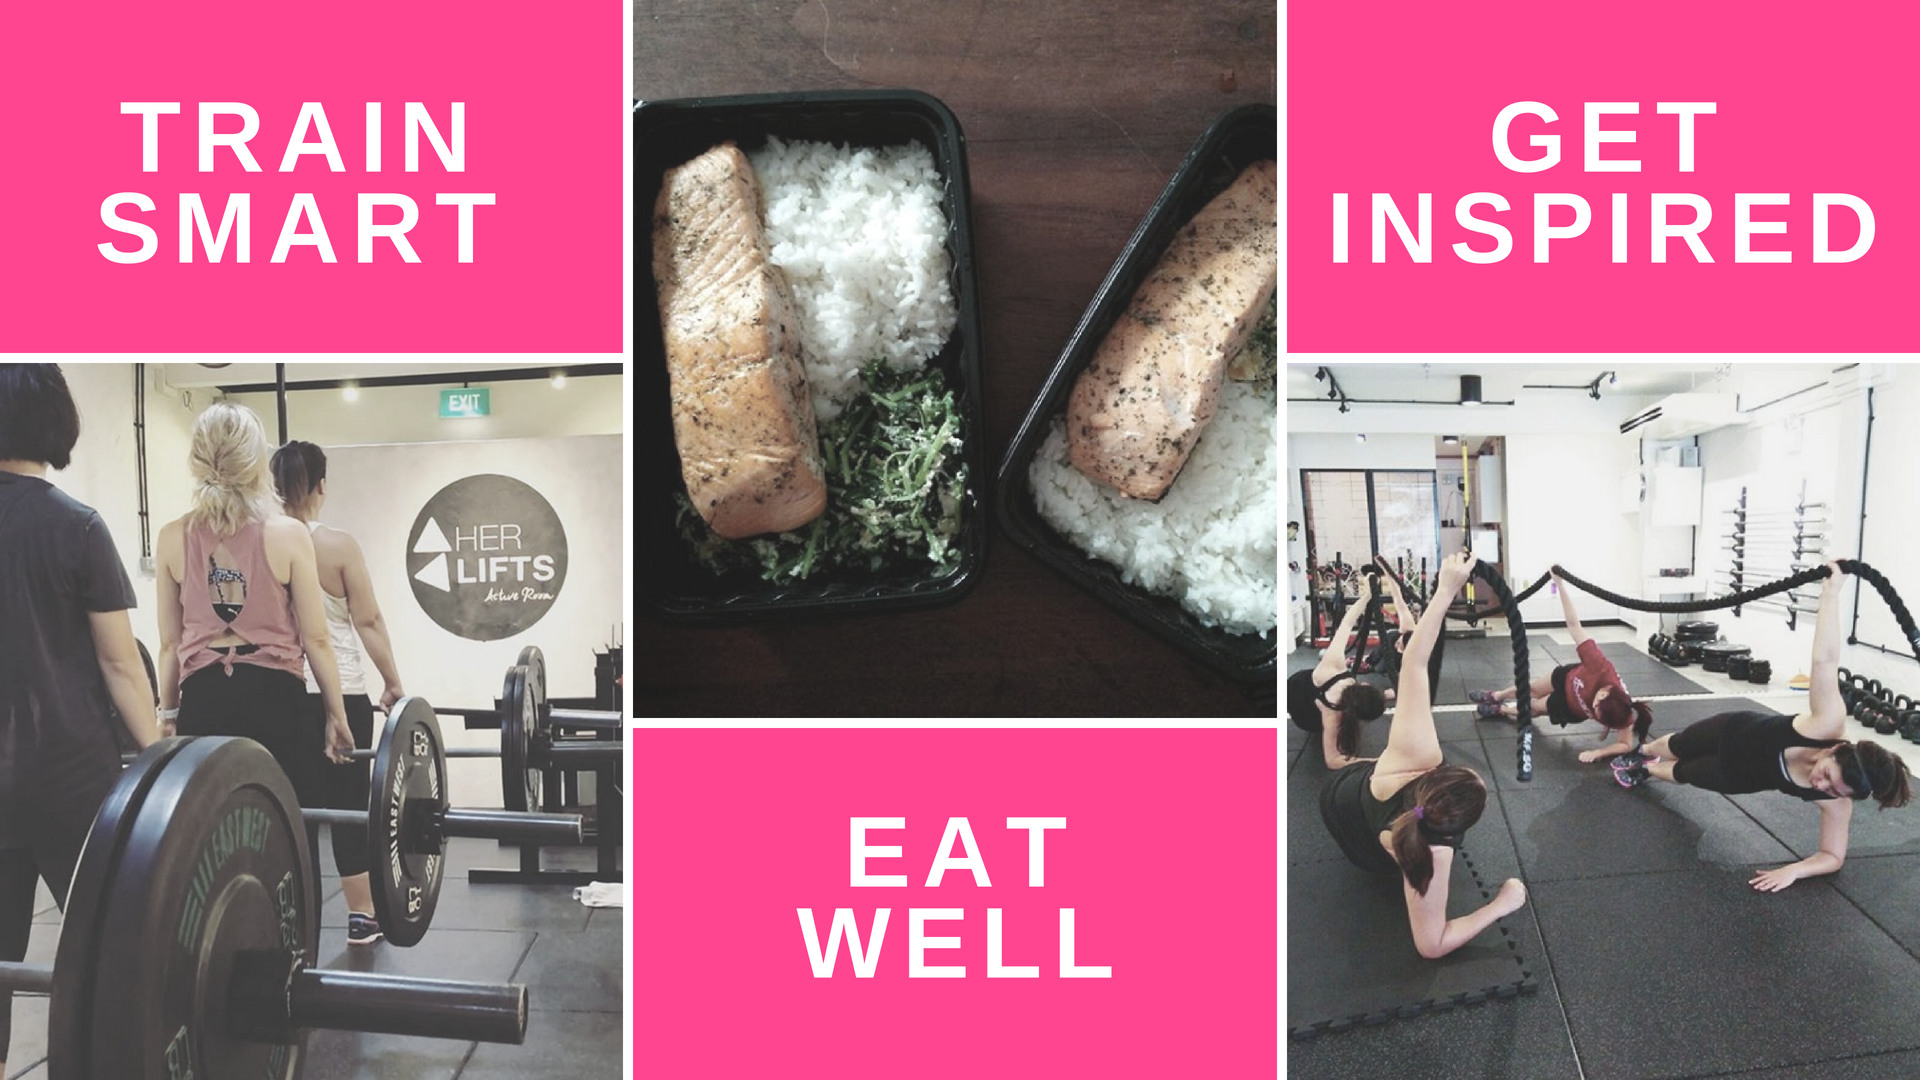 Female Strength Training, Meal Plans & Guidance, and Female Fitness Community.